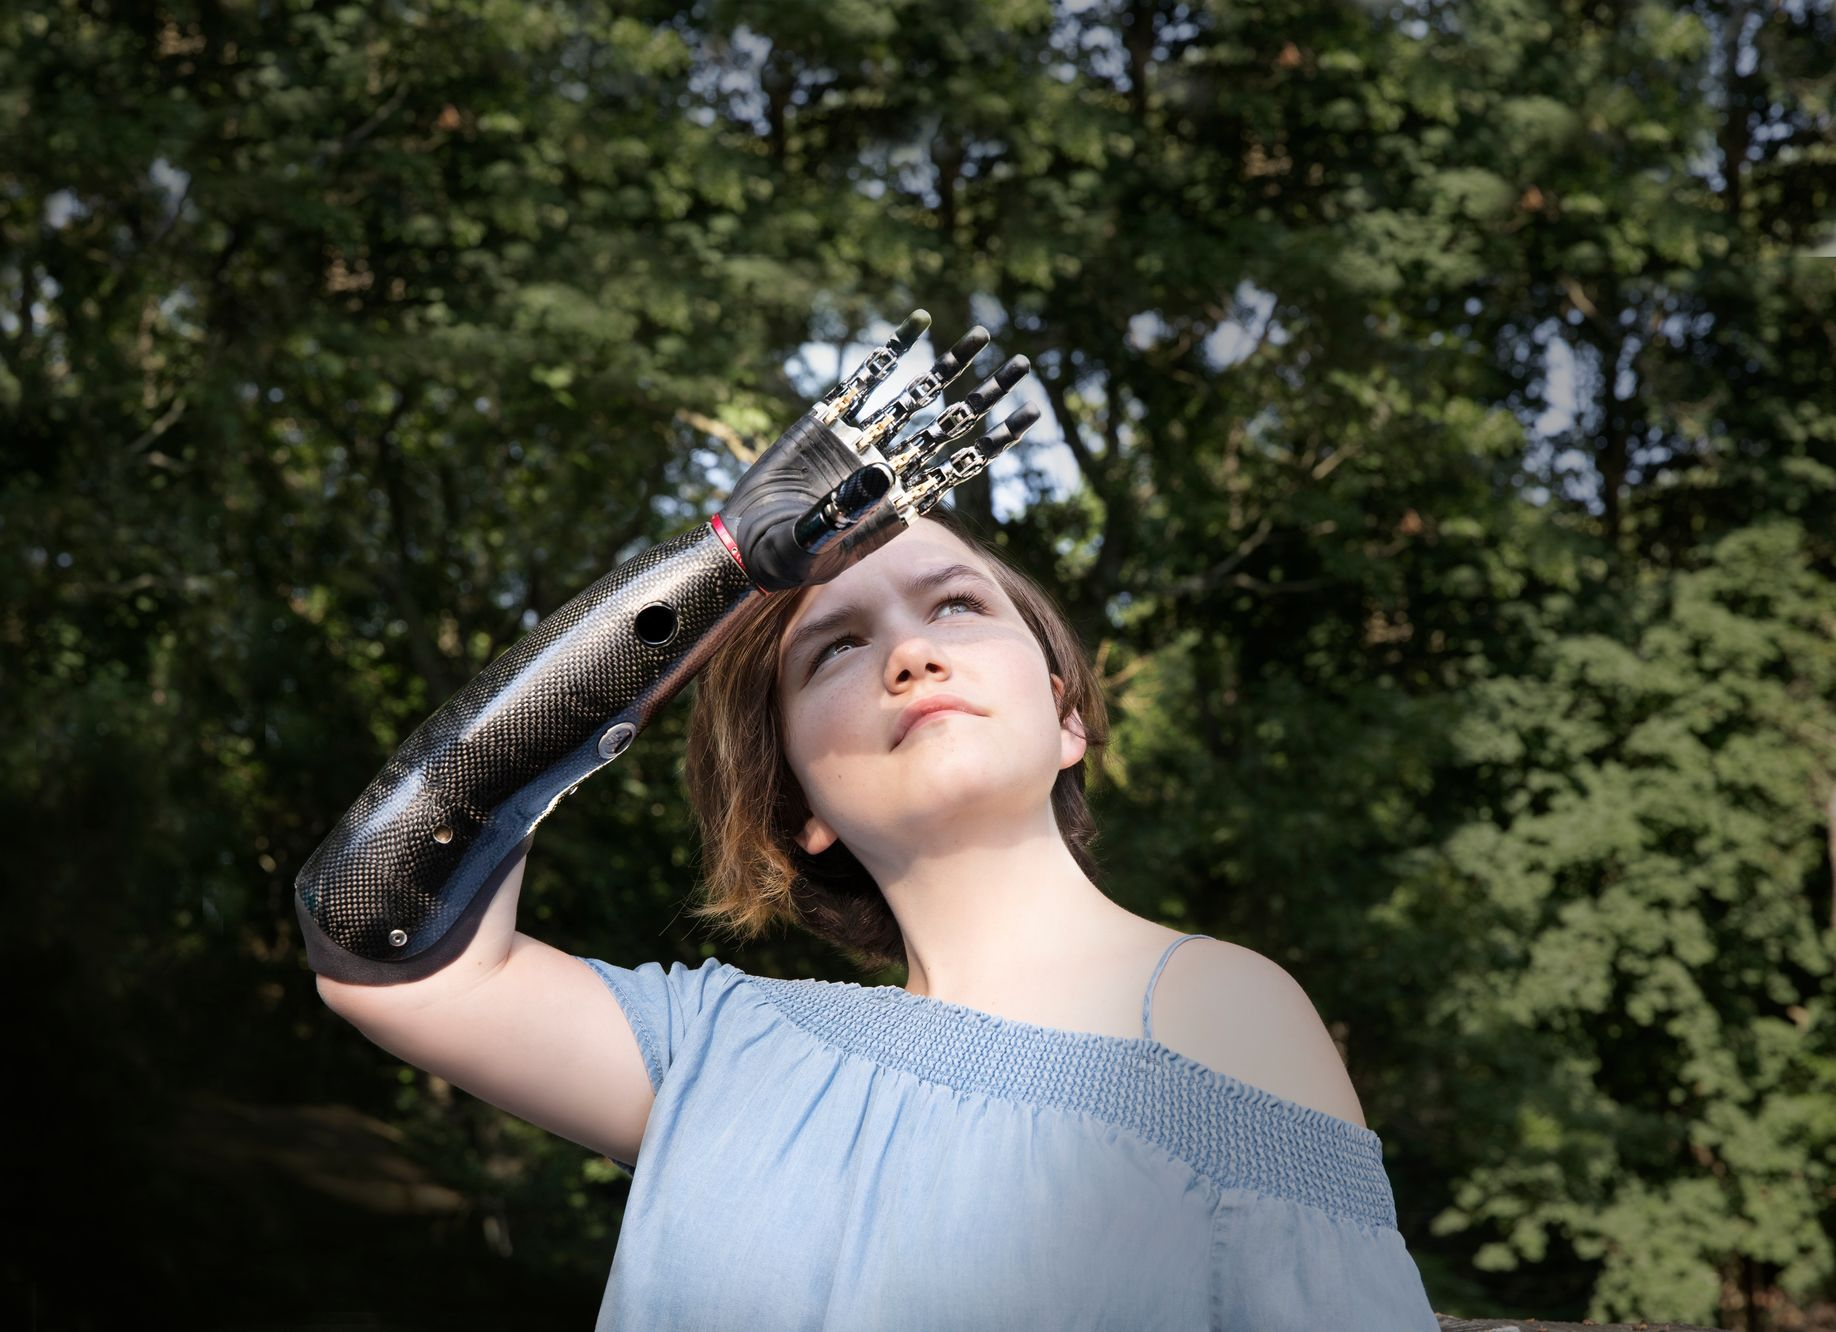 13-year-old girl using her bionic arm to block the sun from her eyes